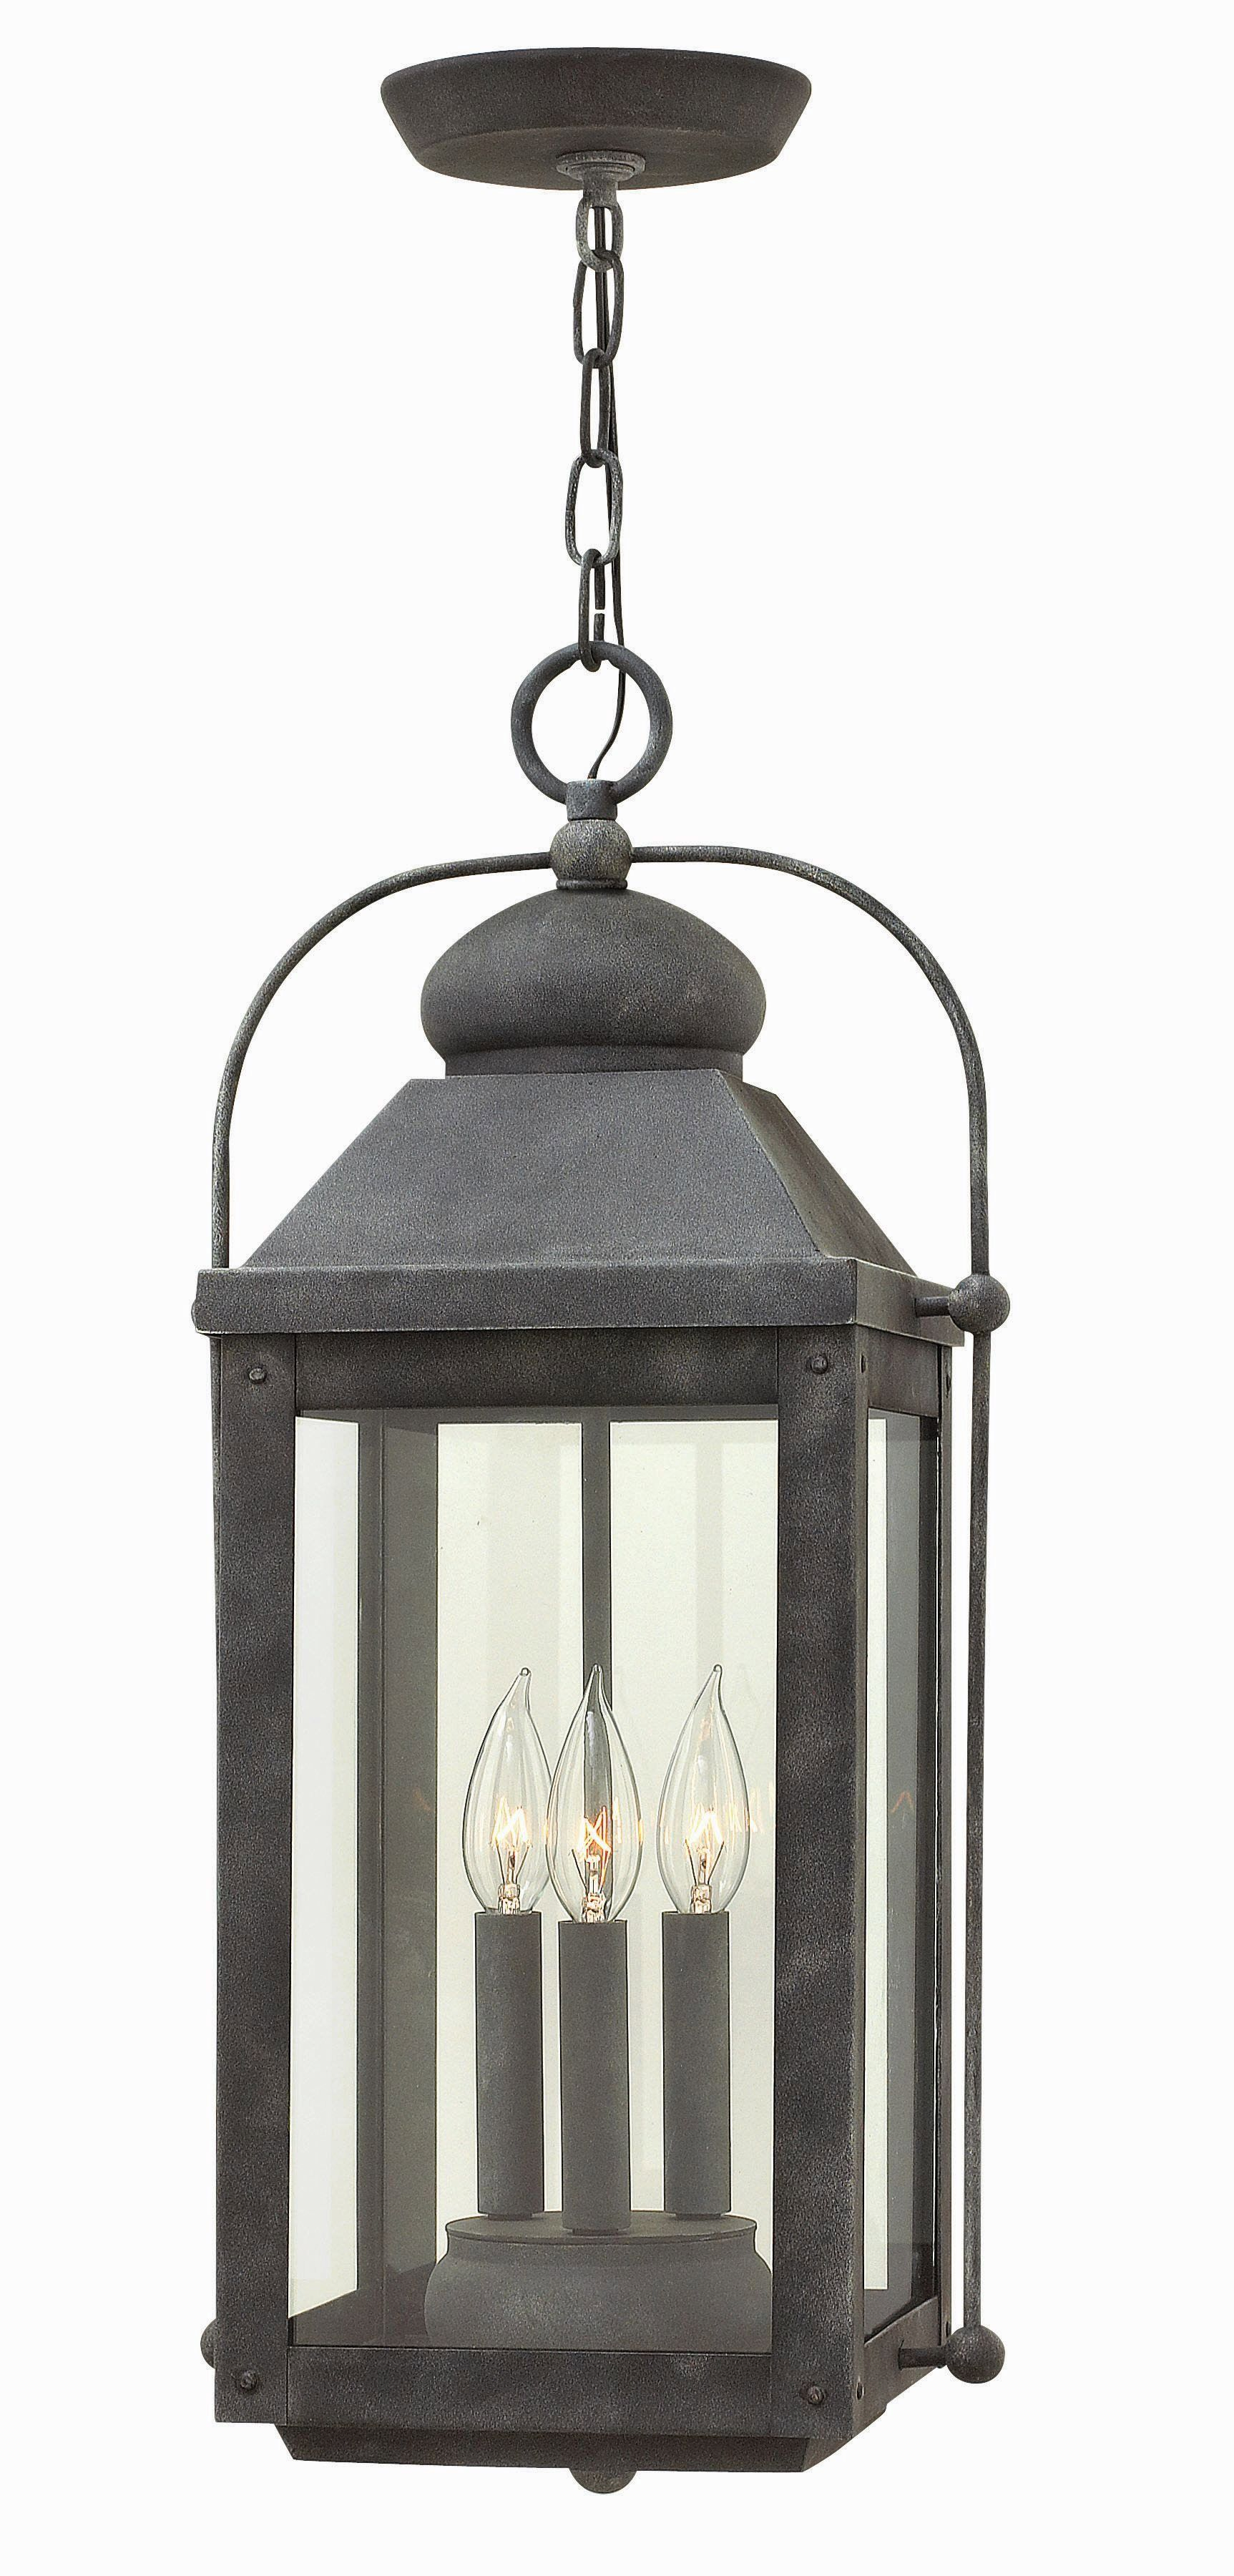 Hanging outdoor candle lanterns for patio - Anchorage Three Light Outdoor Hanging Lantern